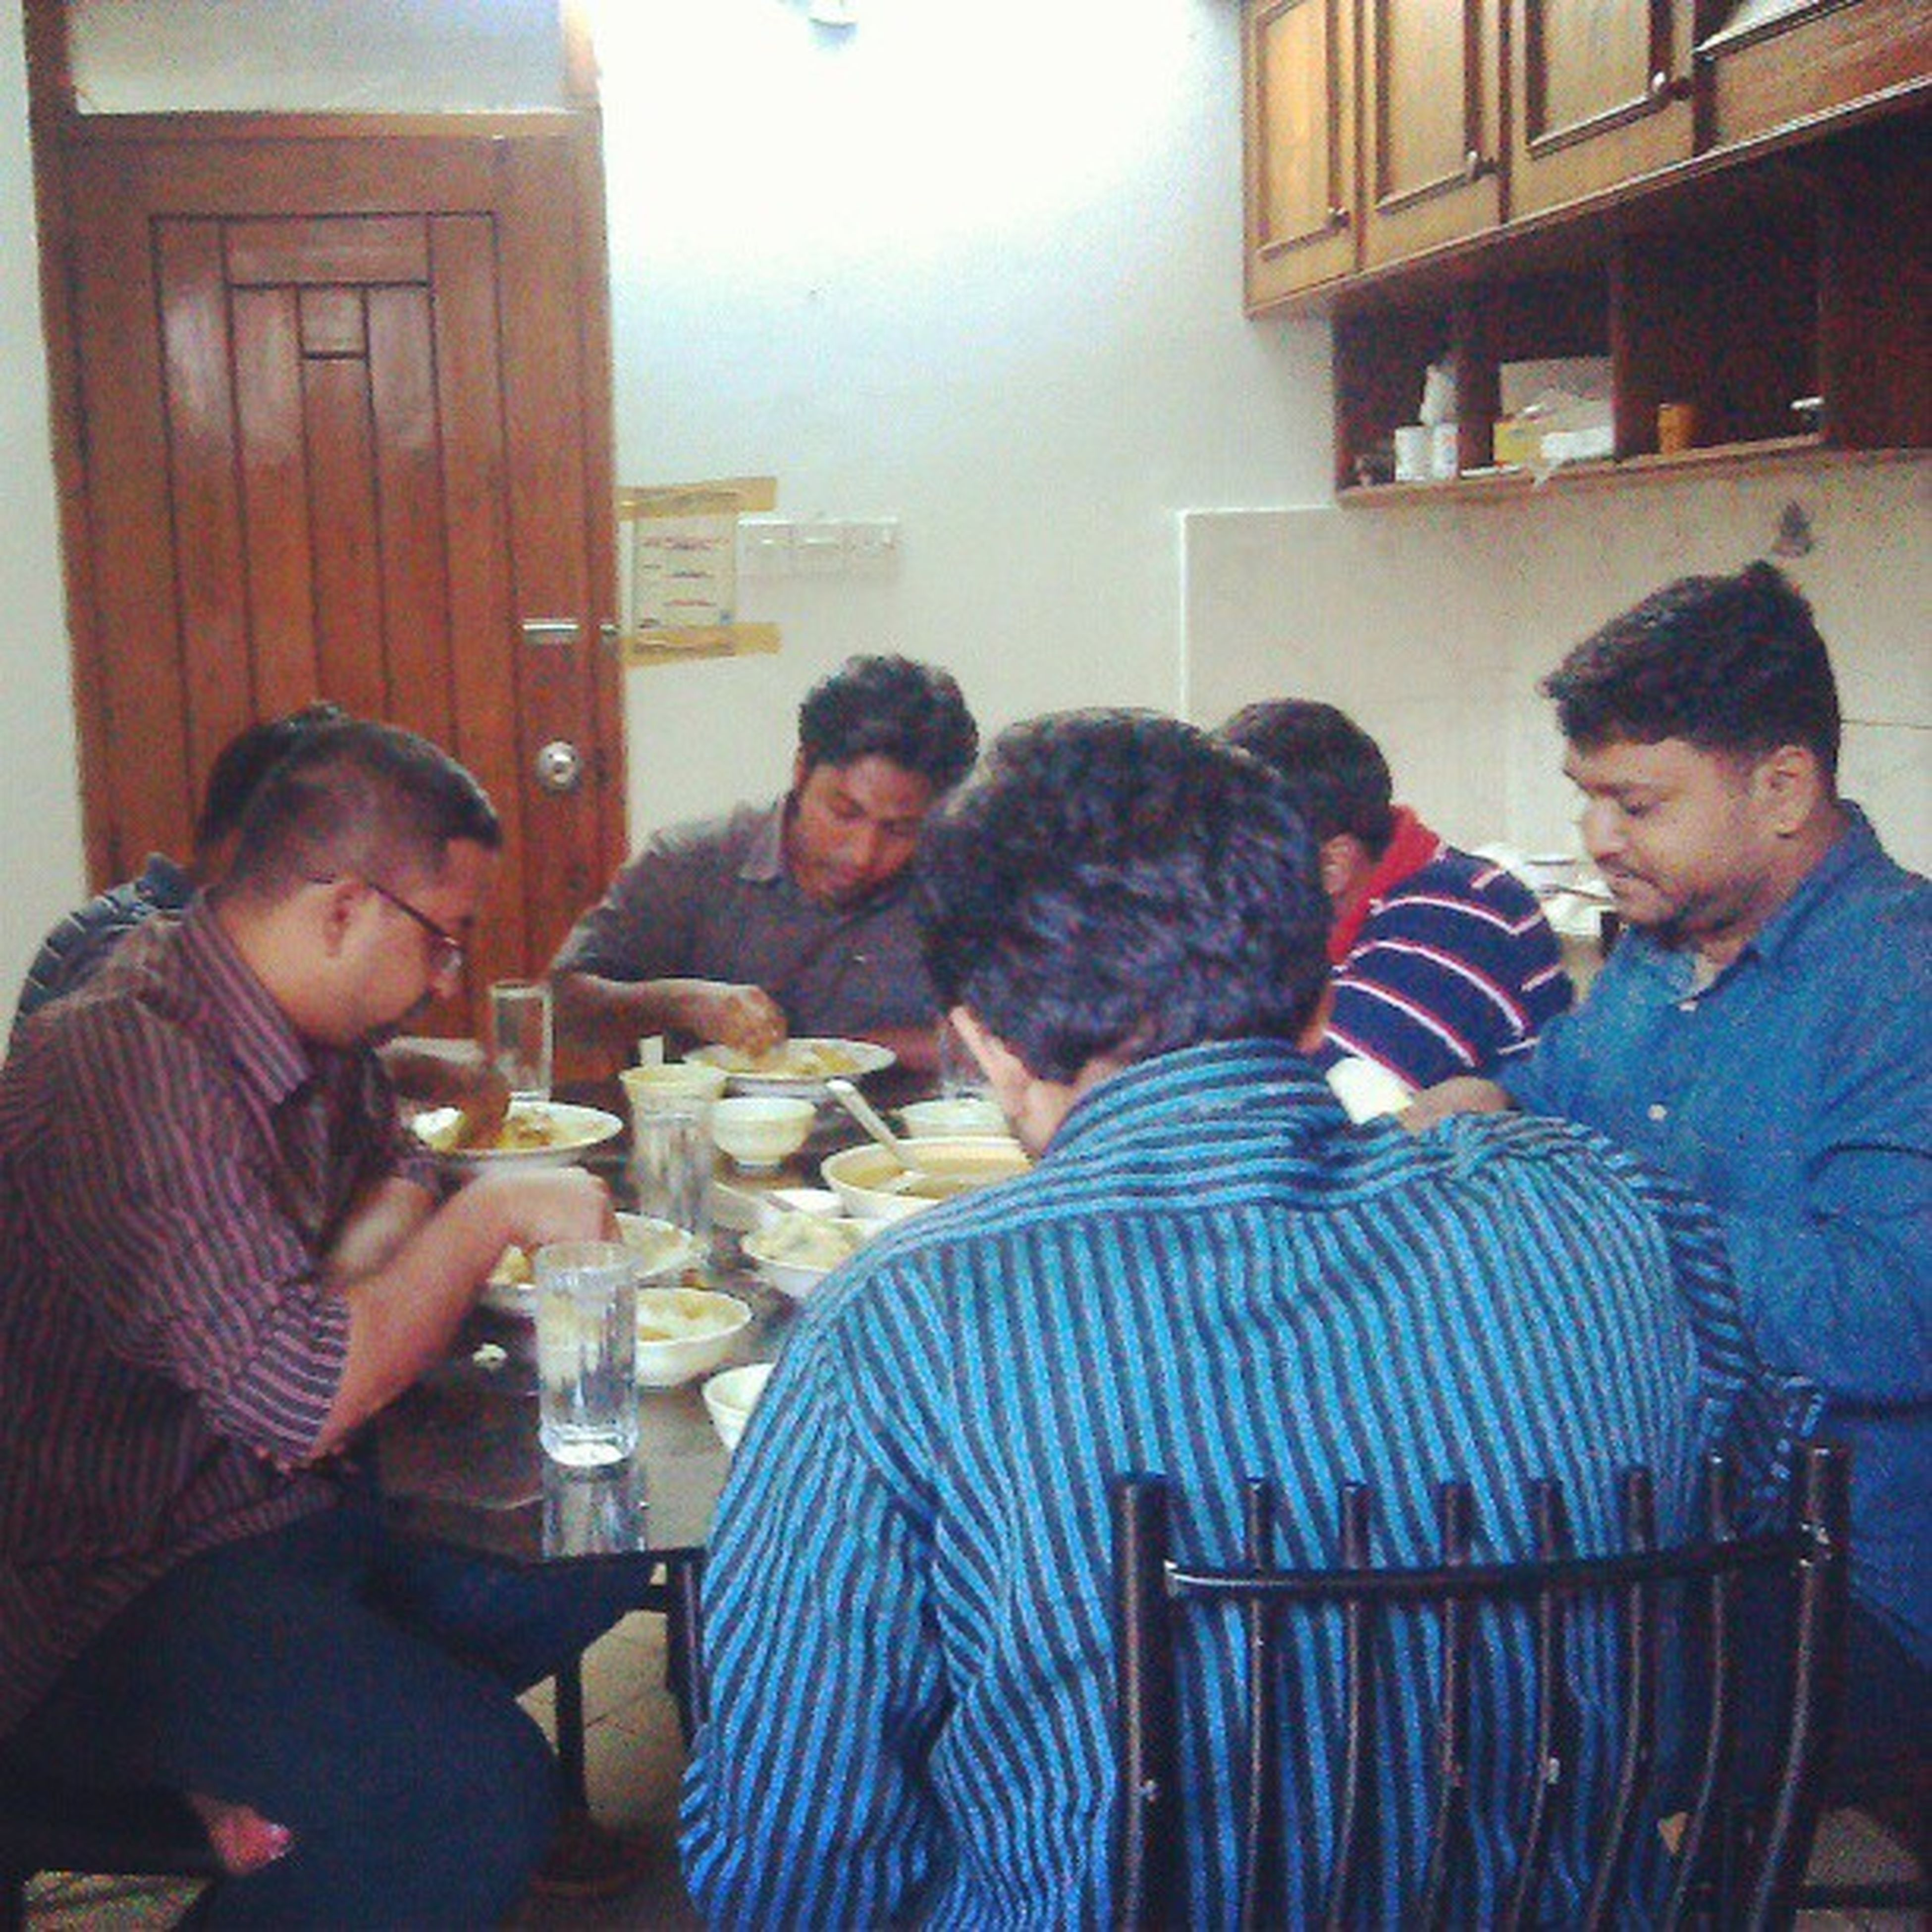 indoors, togetherness, lifestyles, person, bonding, leisure activity, casual clothing, love, friendship, young men, sitting, young adult, family, waist up, happiness, boys, smiling, wireless technology